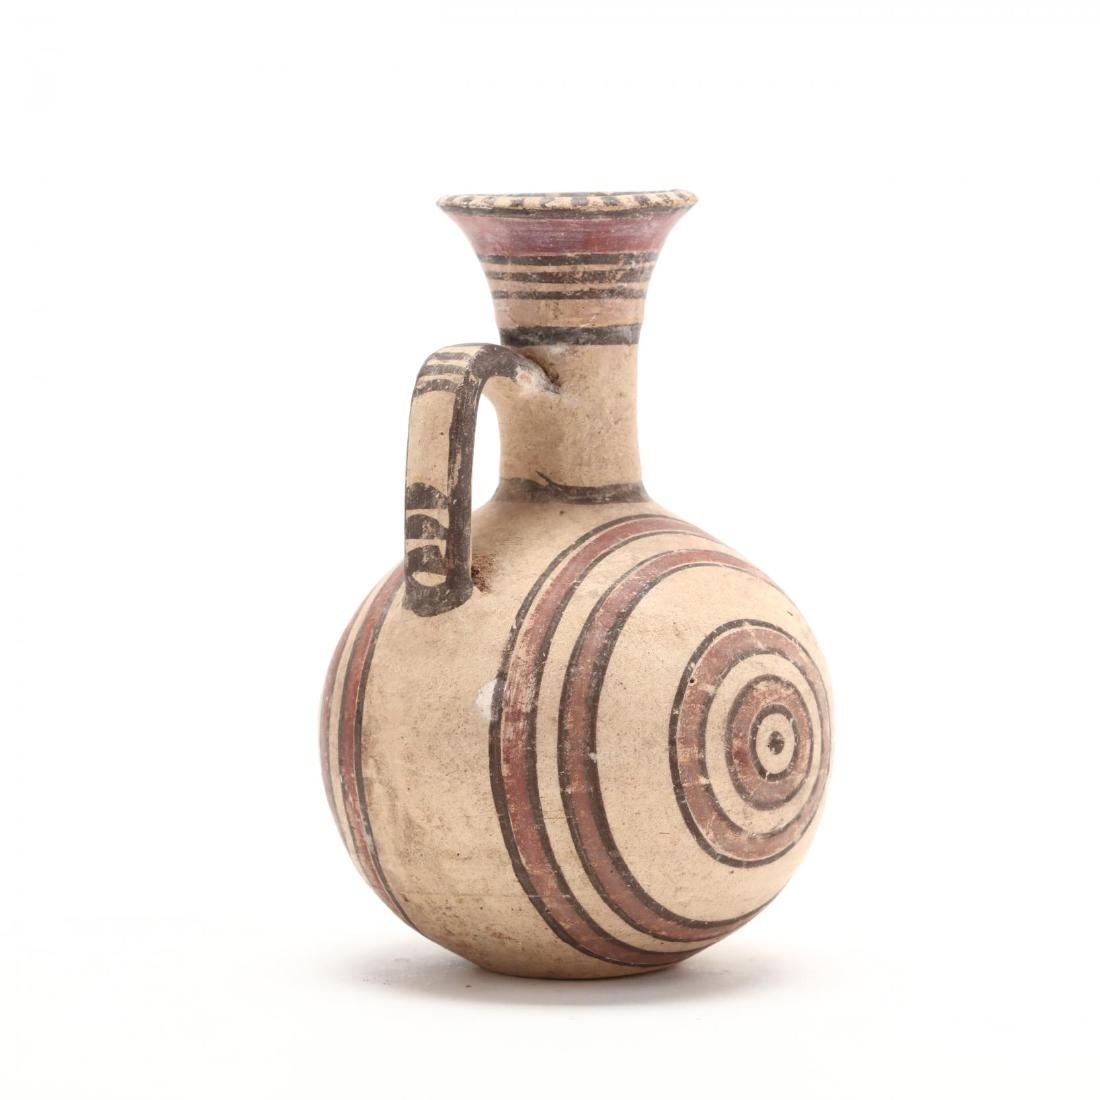 Cypro-Archaic Barrel Flask - 4